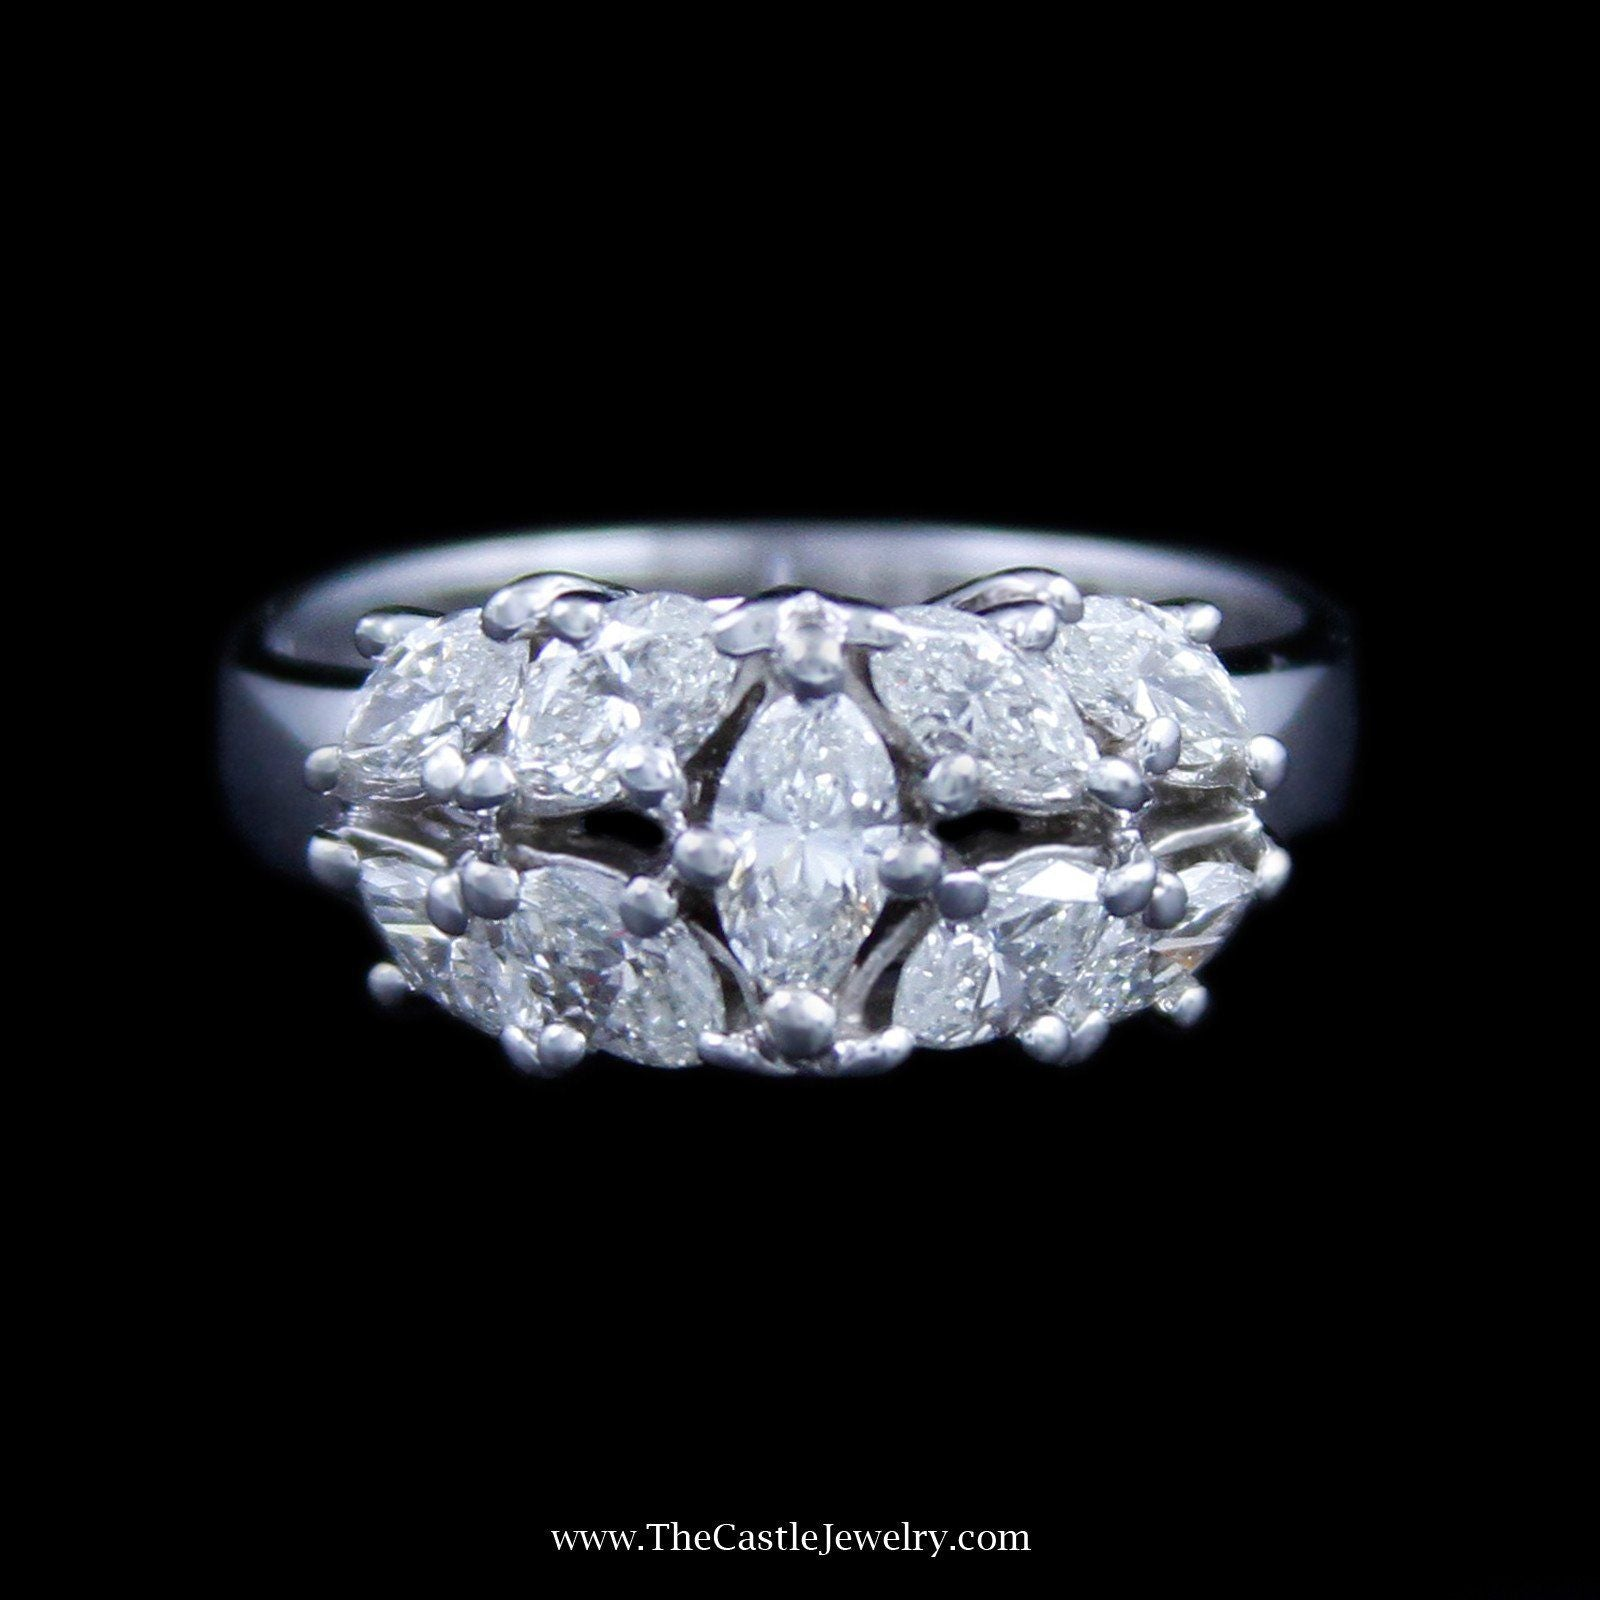 Gorgeous Marquise Diamond Cluster Ring with Polished Sides in 18K White Gold